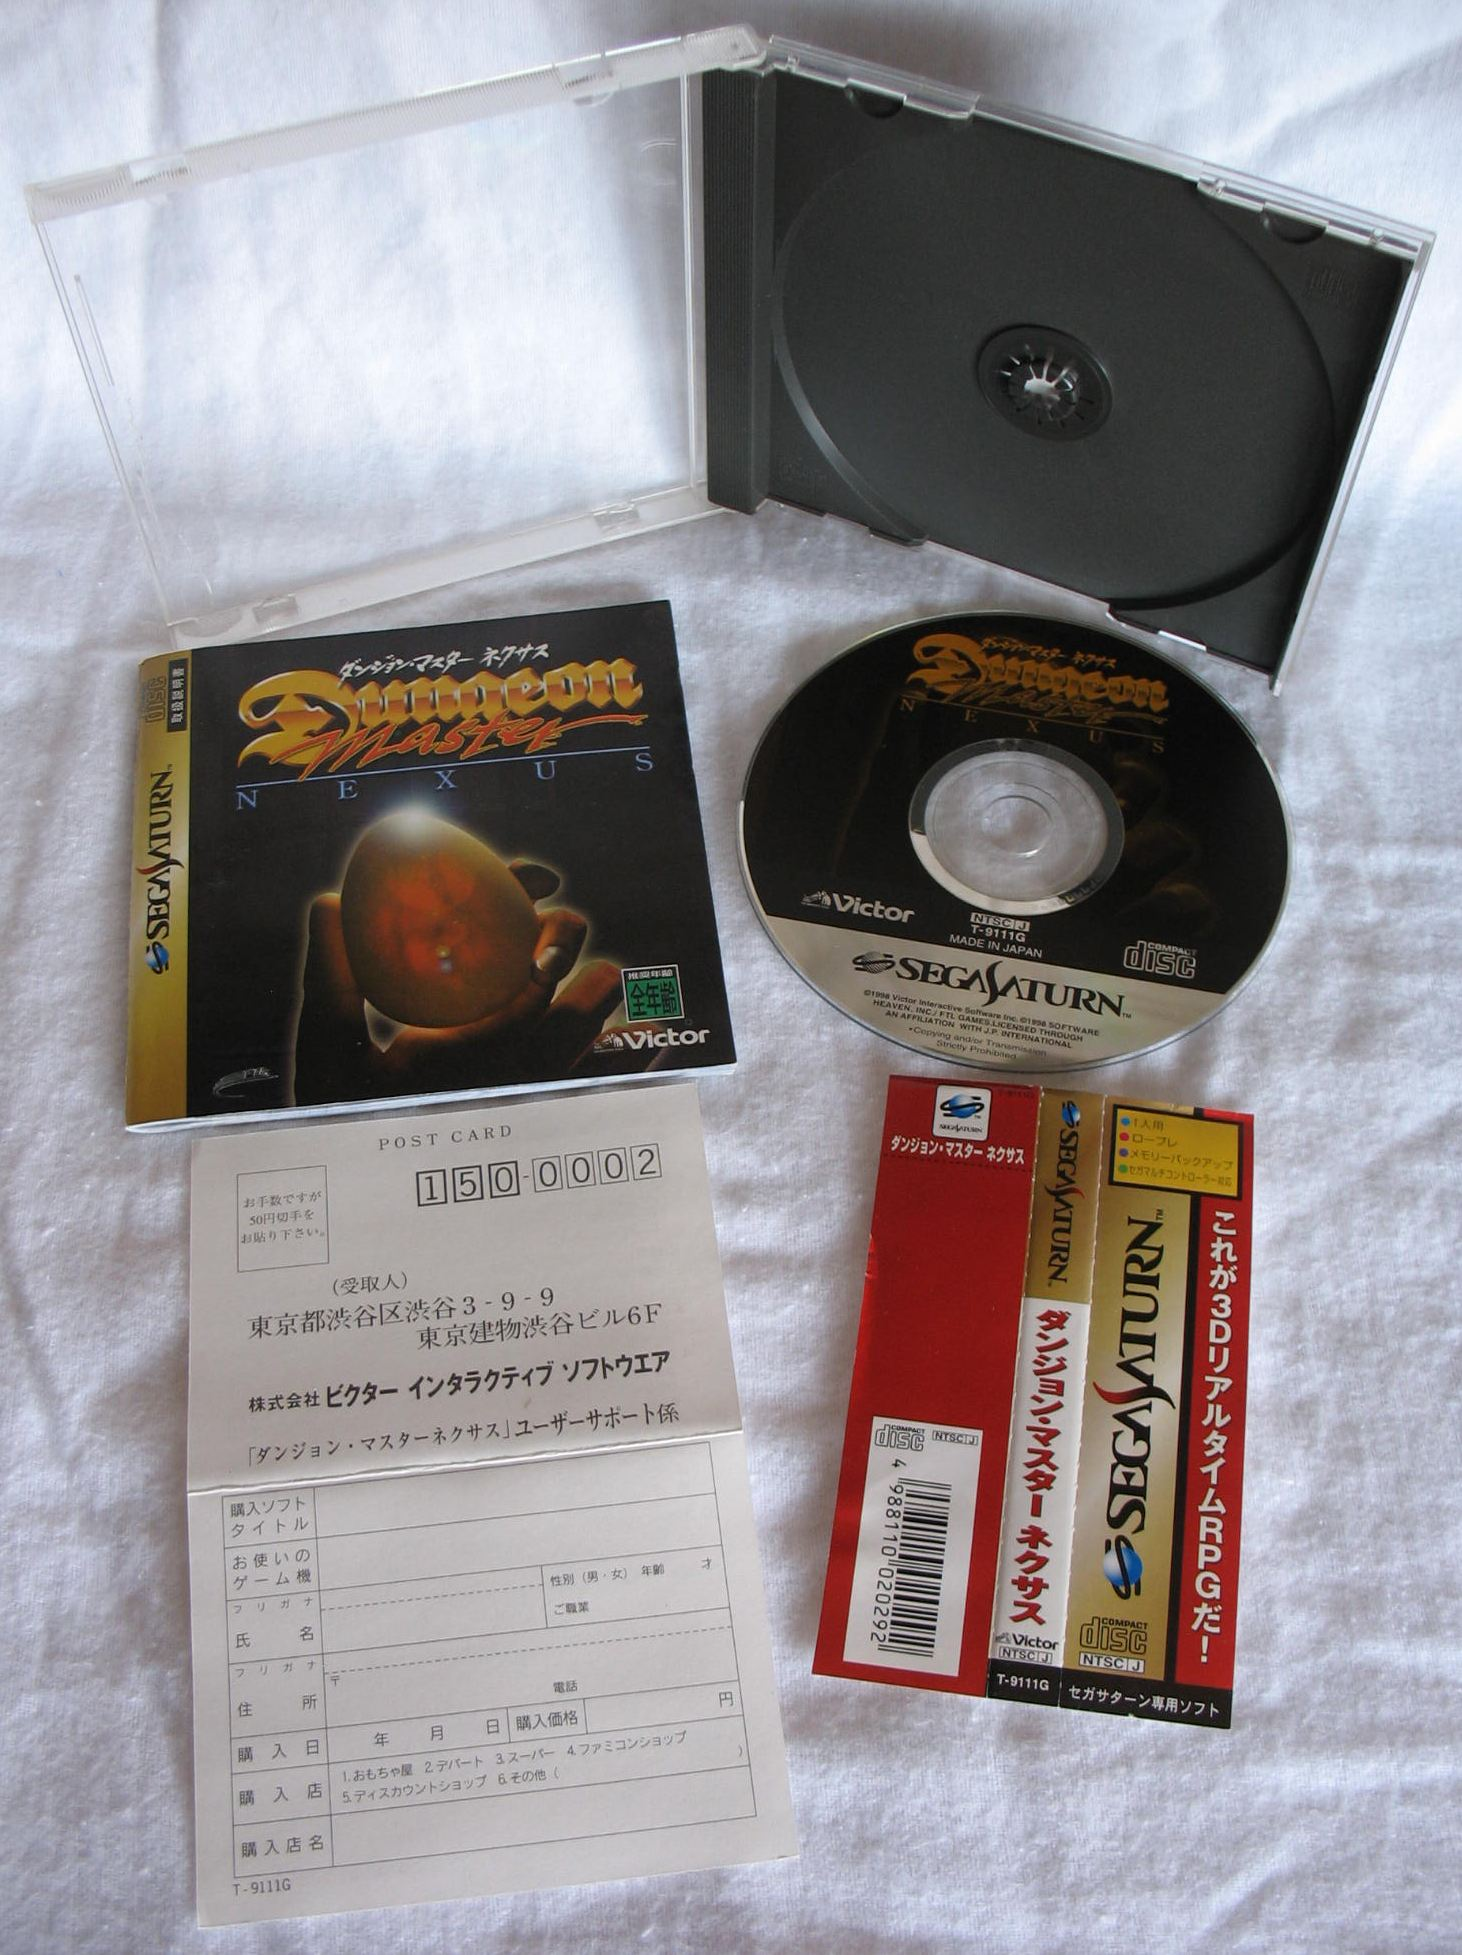 Game - Dungeon Master Nexus - JP - Sega Saturn - All - Overview - Photo